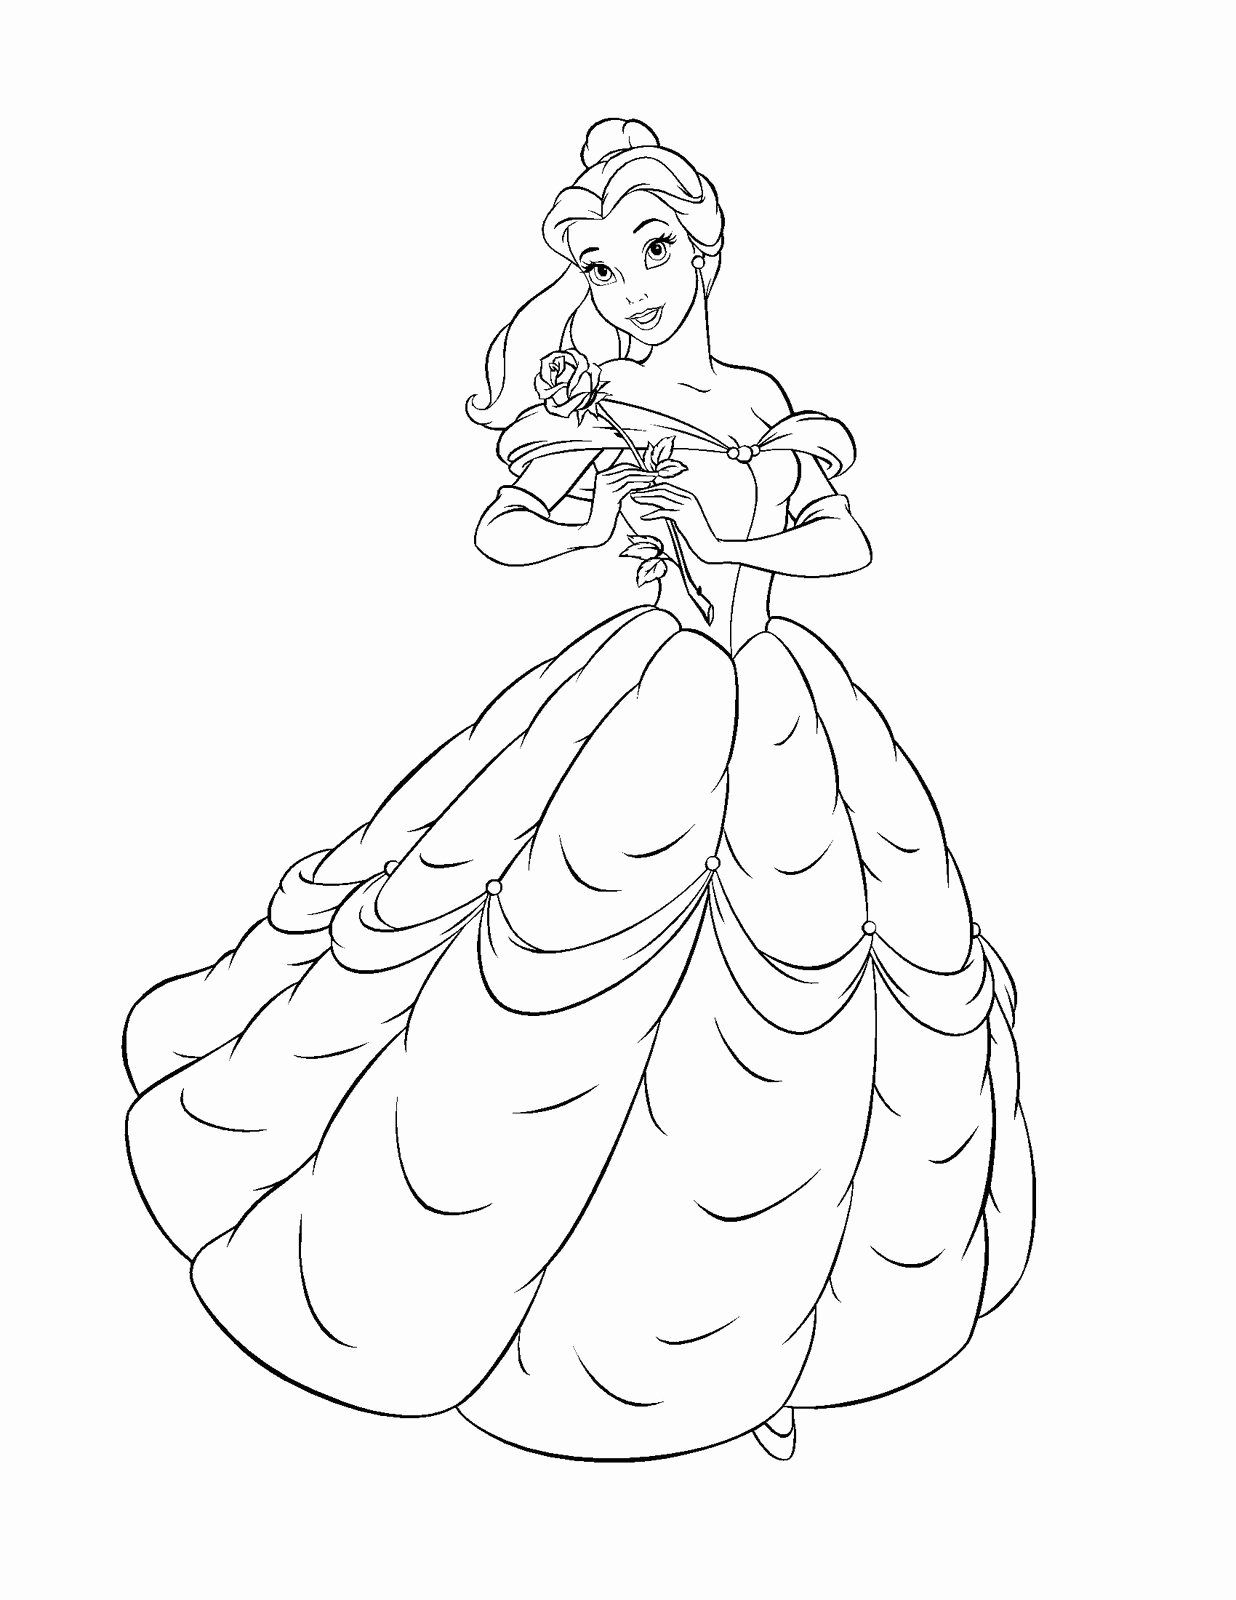 Print Princess Belle Coloring Pages Belle Coloring Pages Princess Coloring Pages Princess Coloring